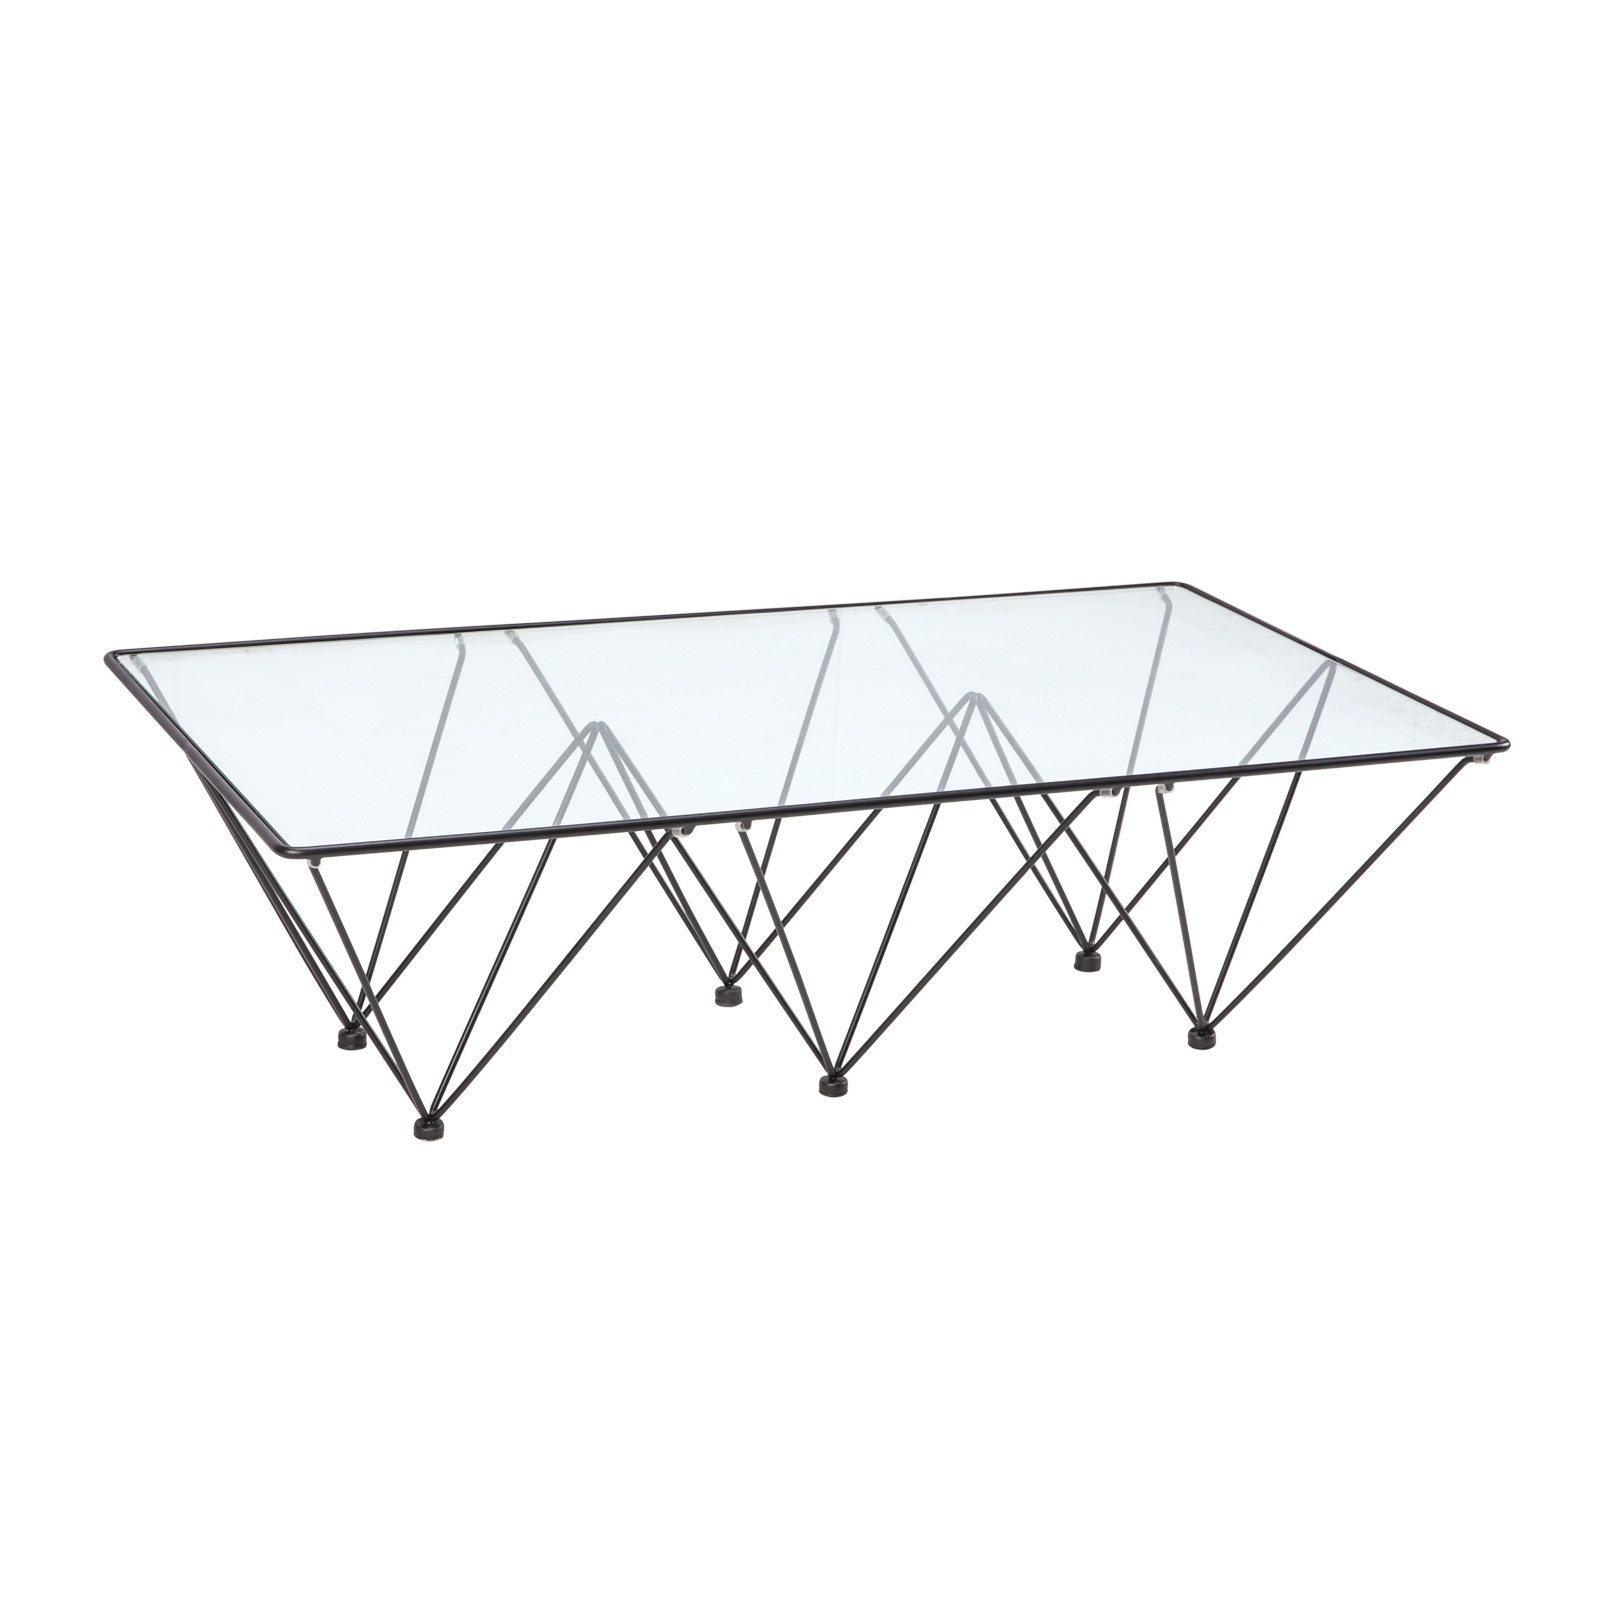 Prism Coffee Table Rentals | Event Furniture Rental Throughout Line Geo Credenzas (View 28 of 30)